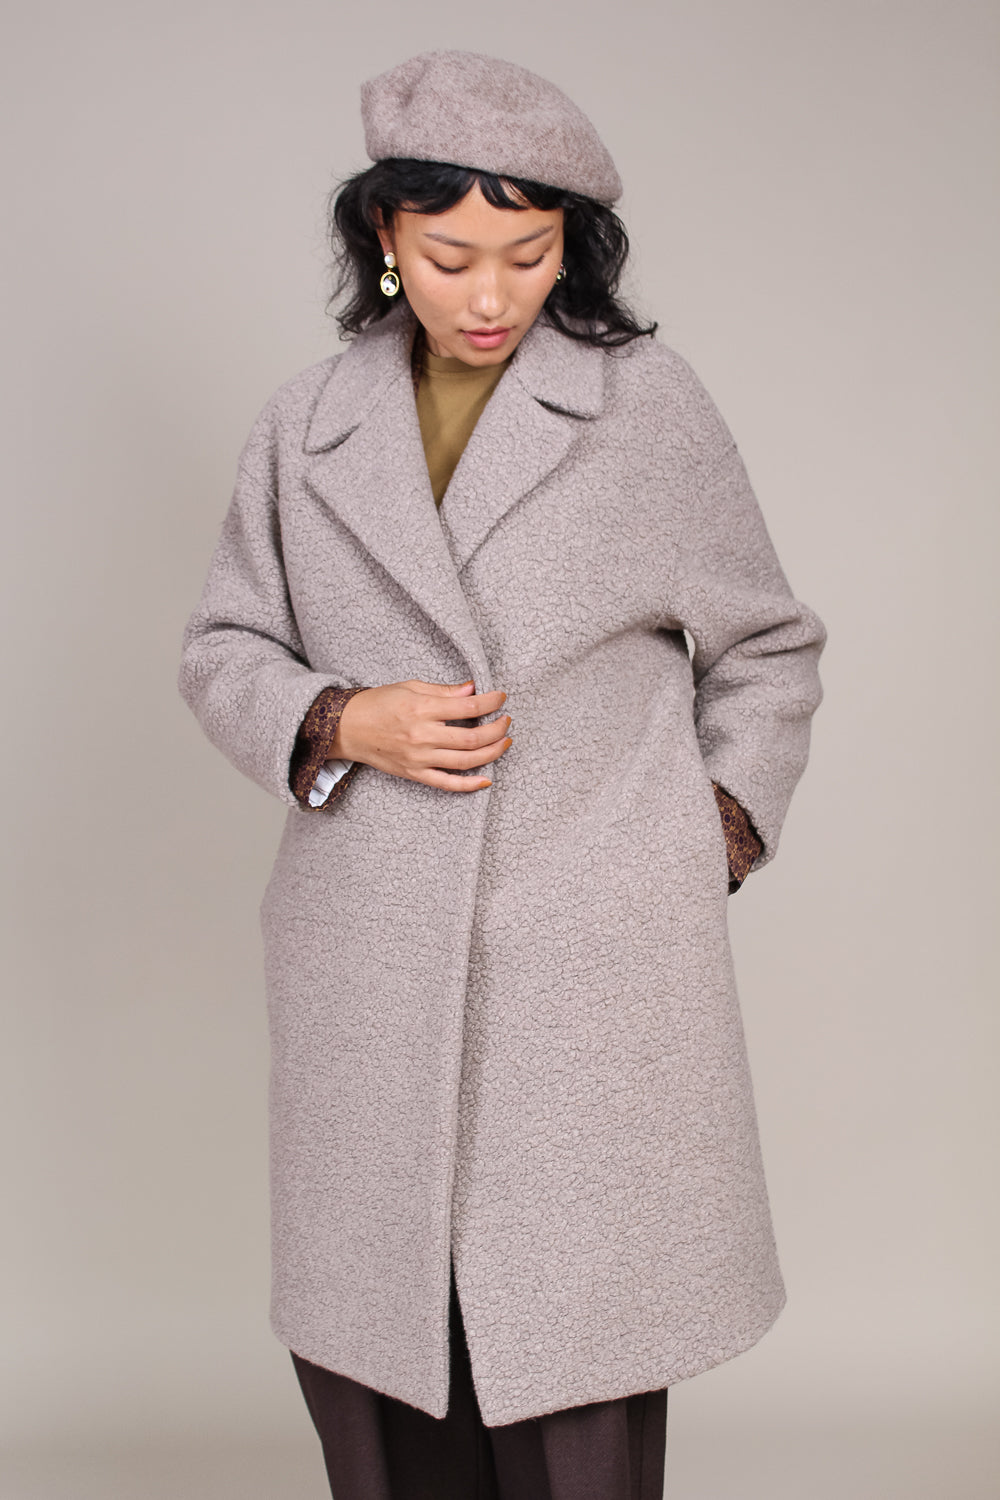 Dropped Shoulder D.b. Boucle Coat in Taupe